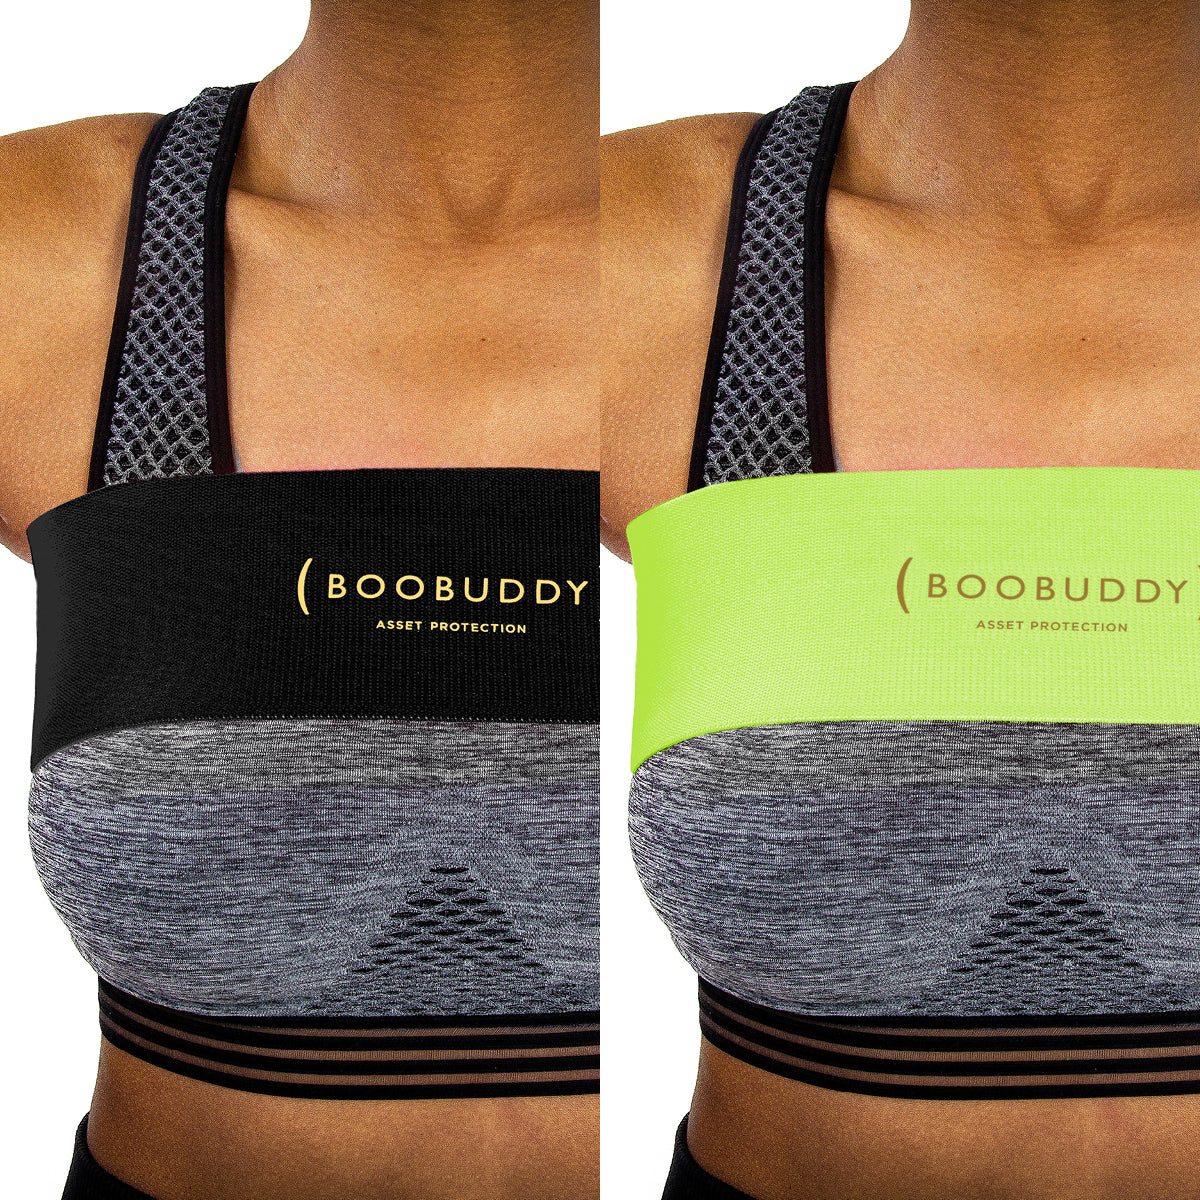 Boobuddy Adjustable Breast Support Band | Black & Green Bundle | How to Wear a Boobuddy